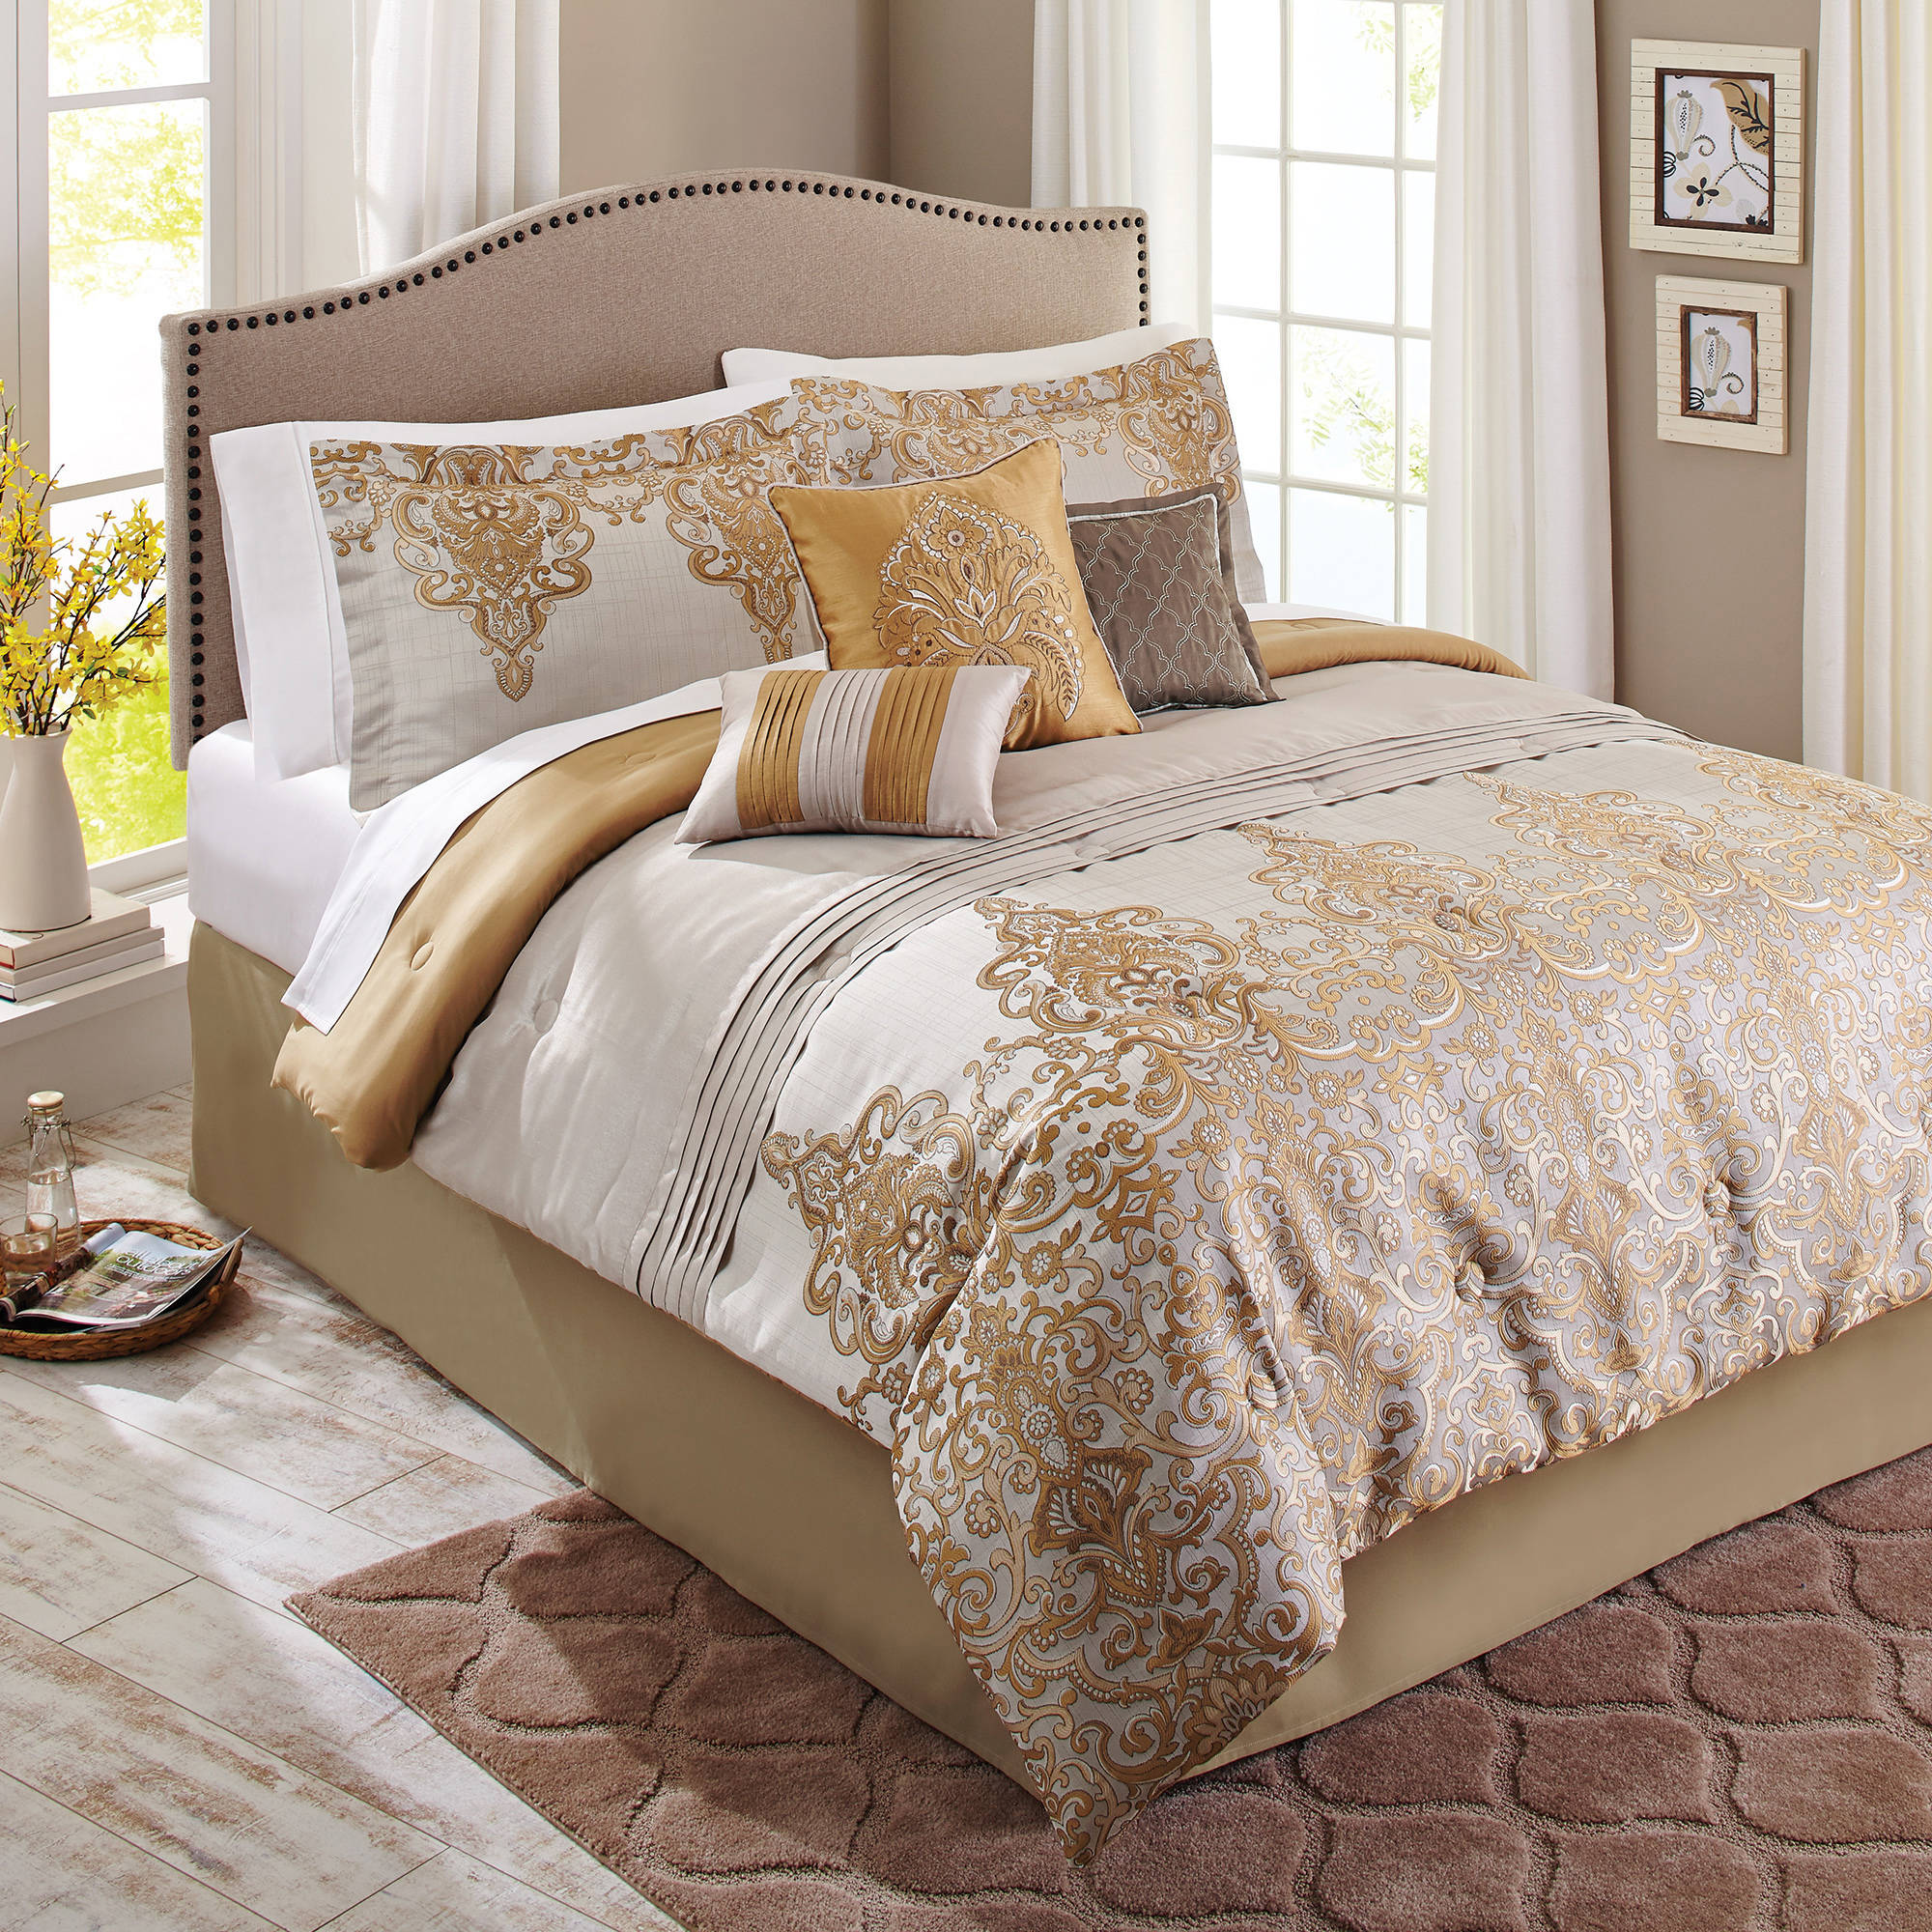 Better Homes and Gardens 7-Piece Bedding Comforter Set, Gold Accent Damask